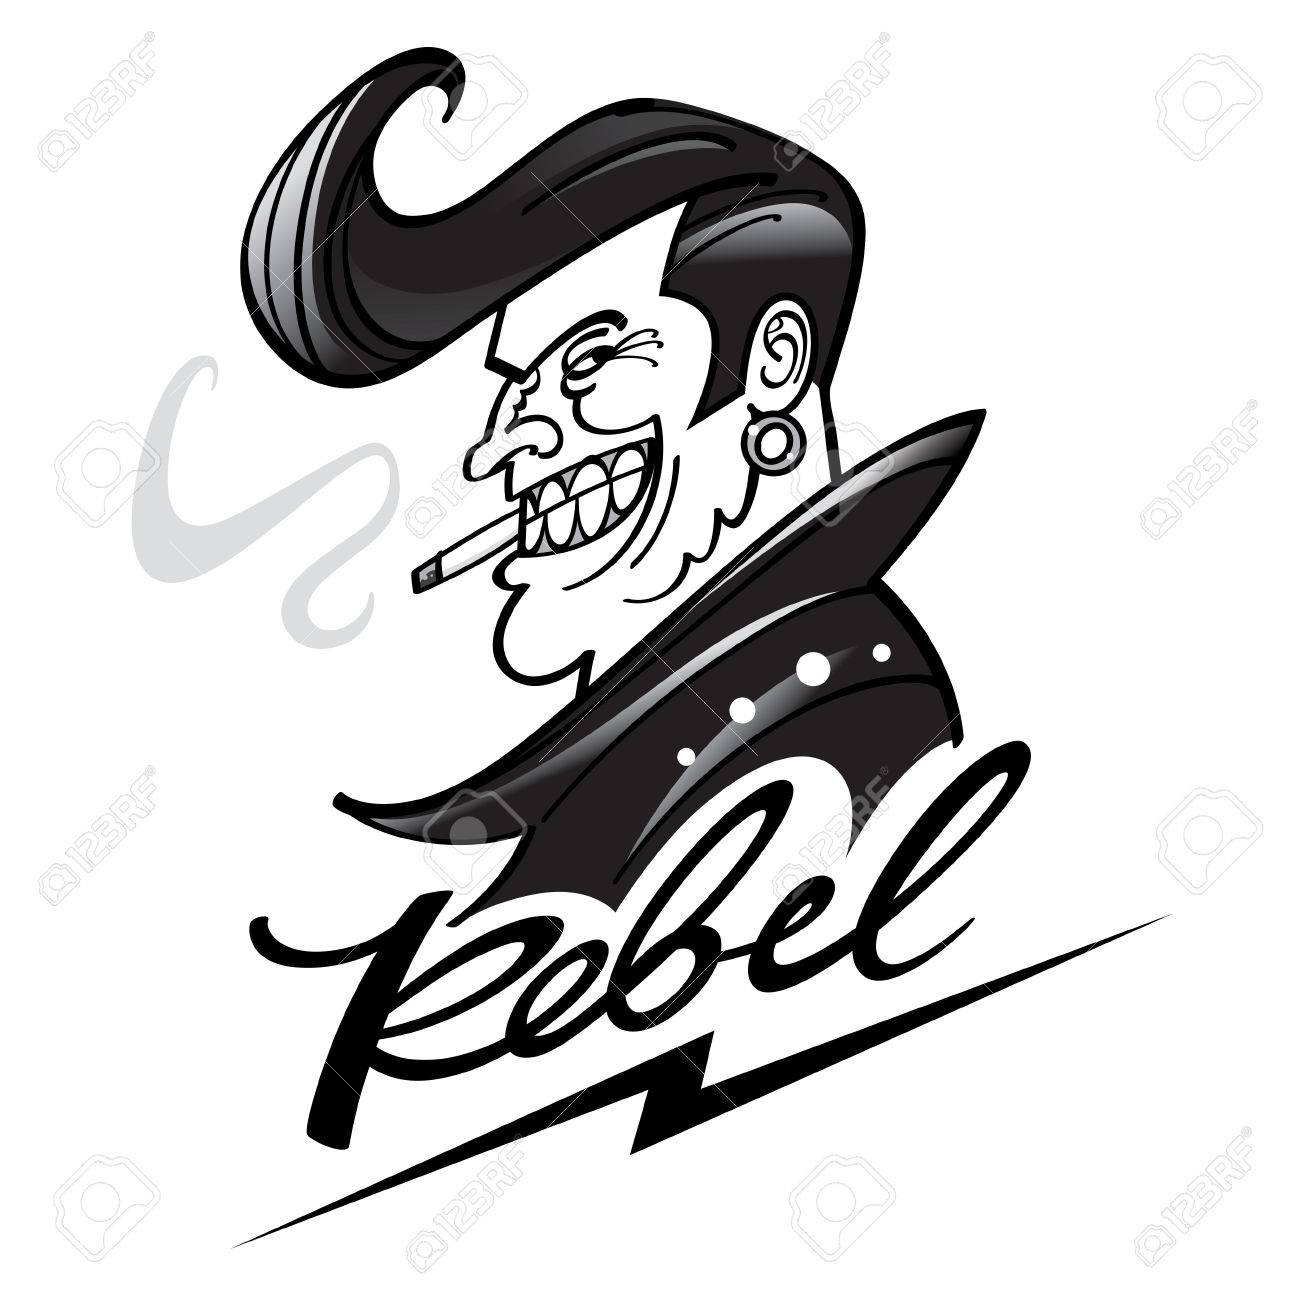 Rebel With A Cool Hairstyle In Leather Jacket Royalty Free Cliparts